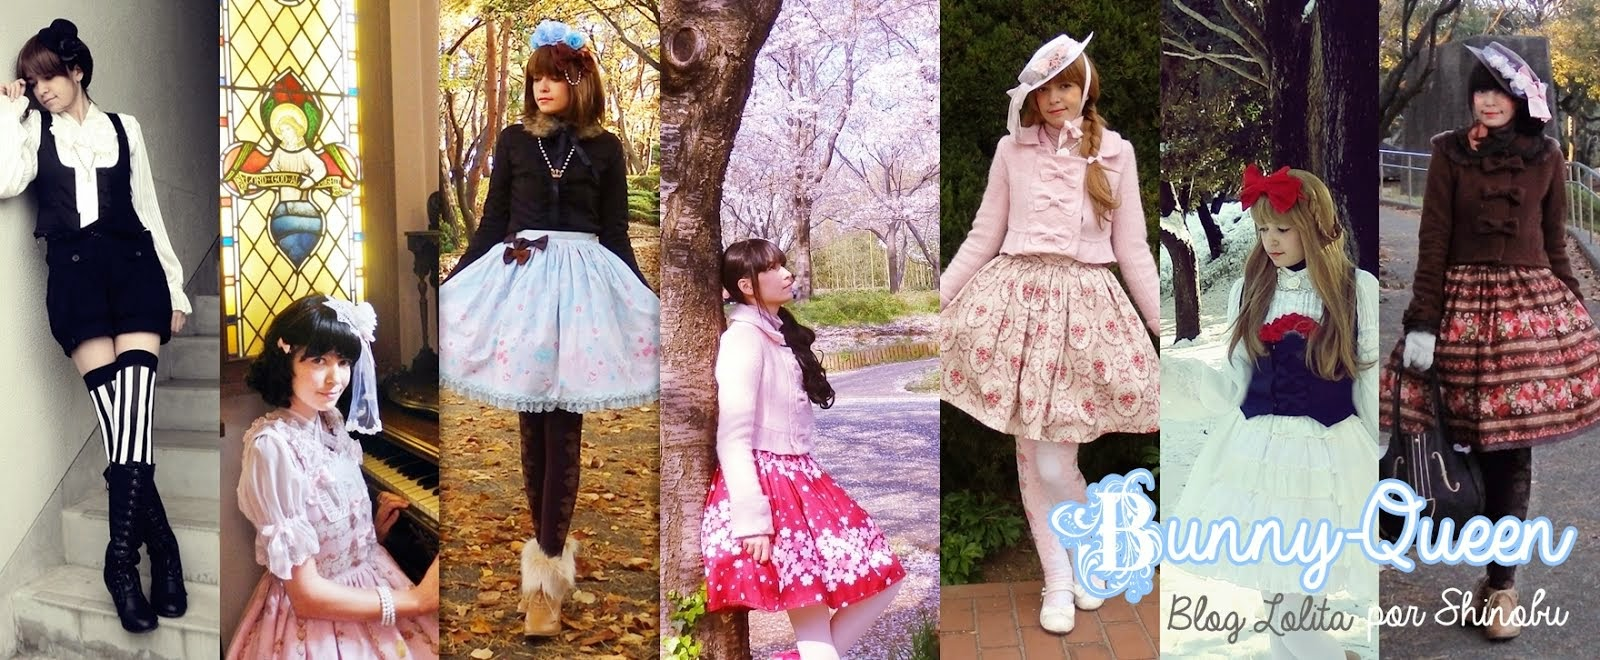 Blog Lolita en Japon por: Shinobu